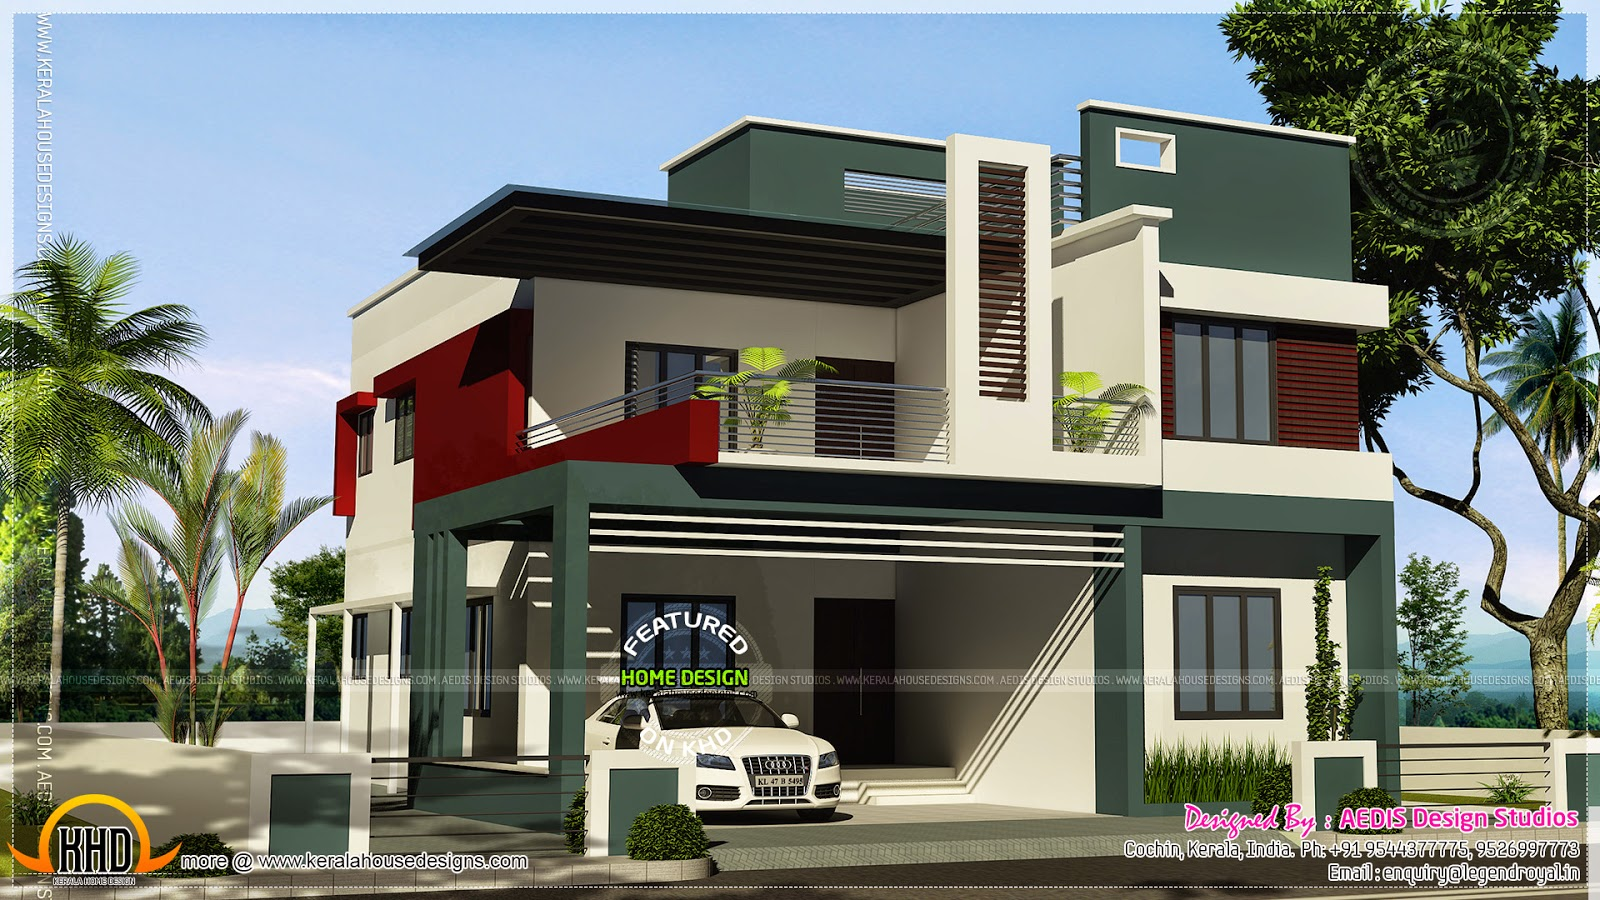 Duplex house plans south indian style home photo style for Duplex designs india